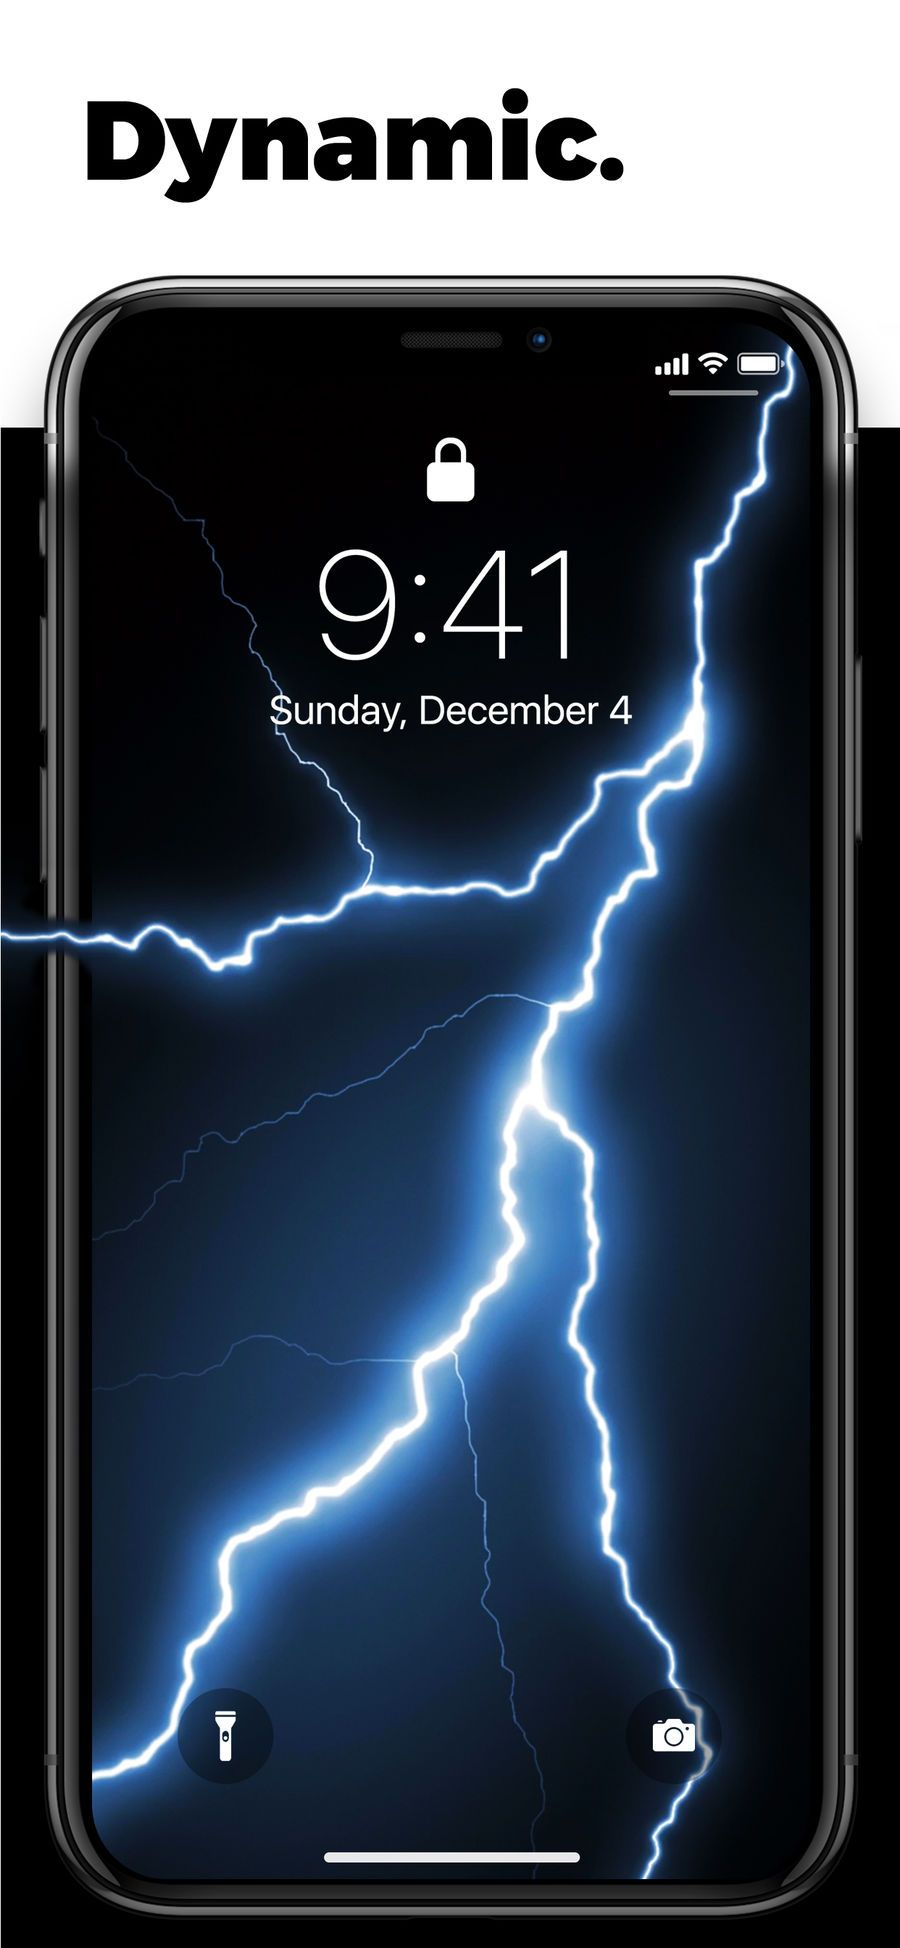 Live Wallpapers For Me On The App Store Live Wallpapers Live Wallpaper Iphone Samsung Wallpaper